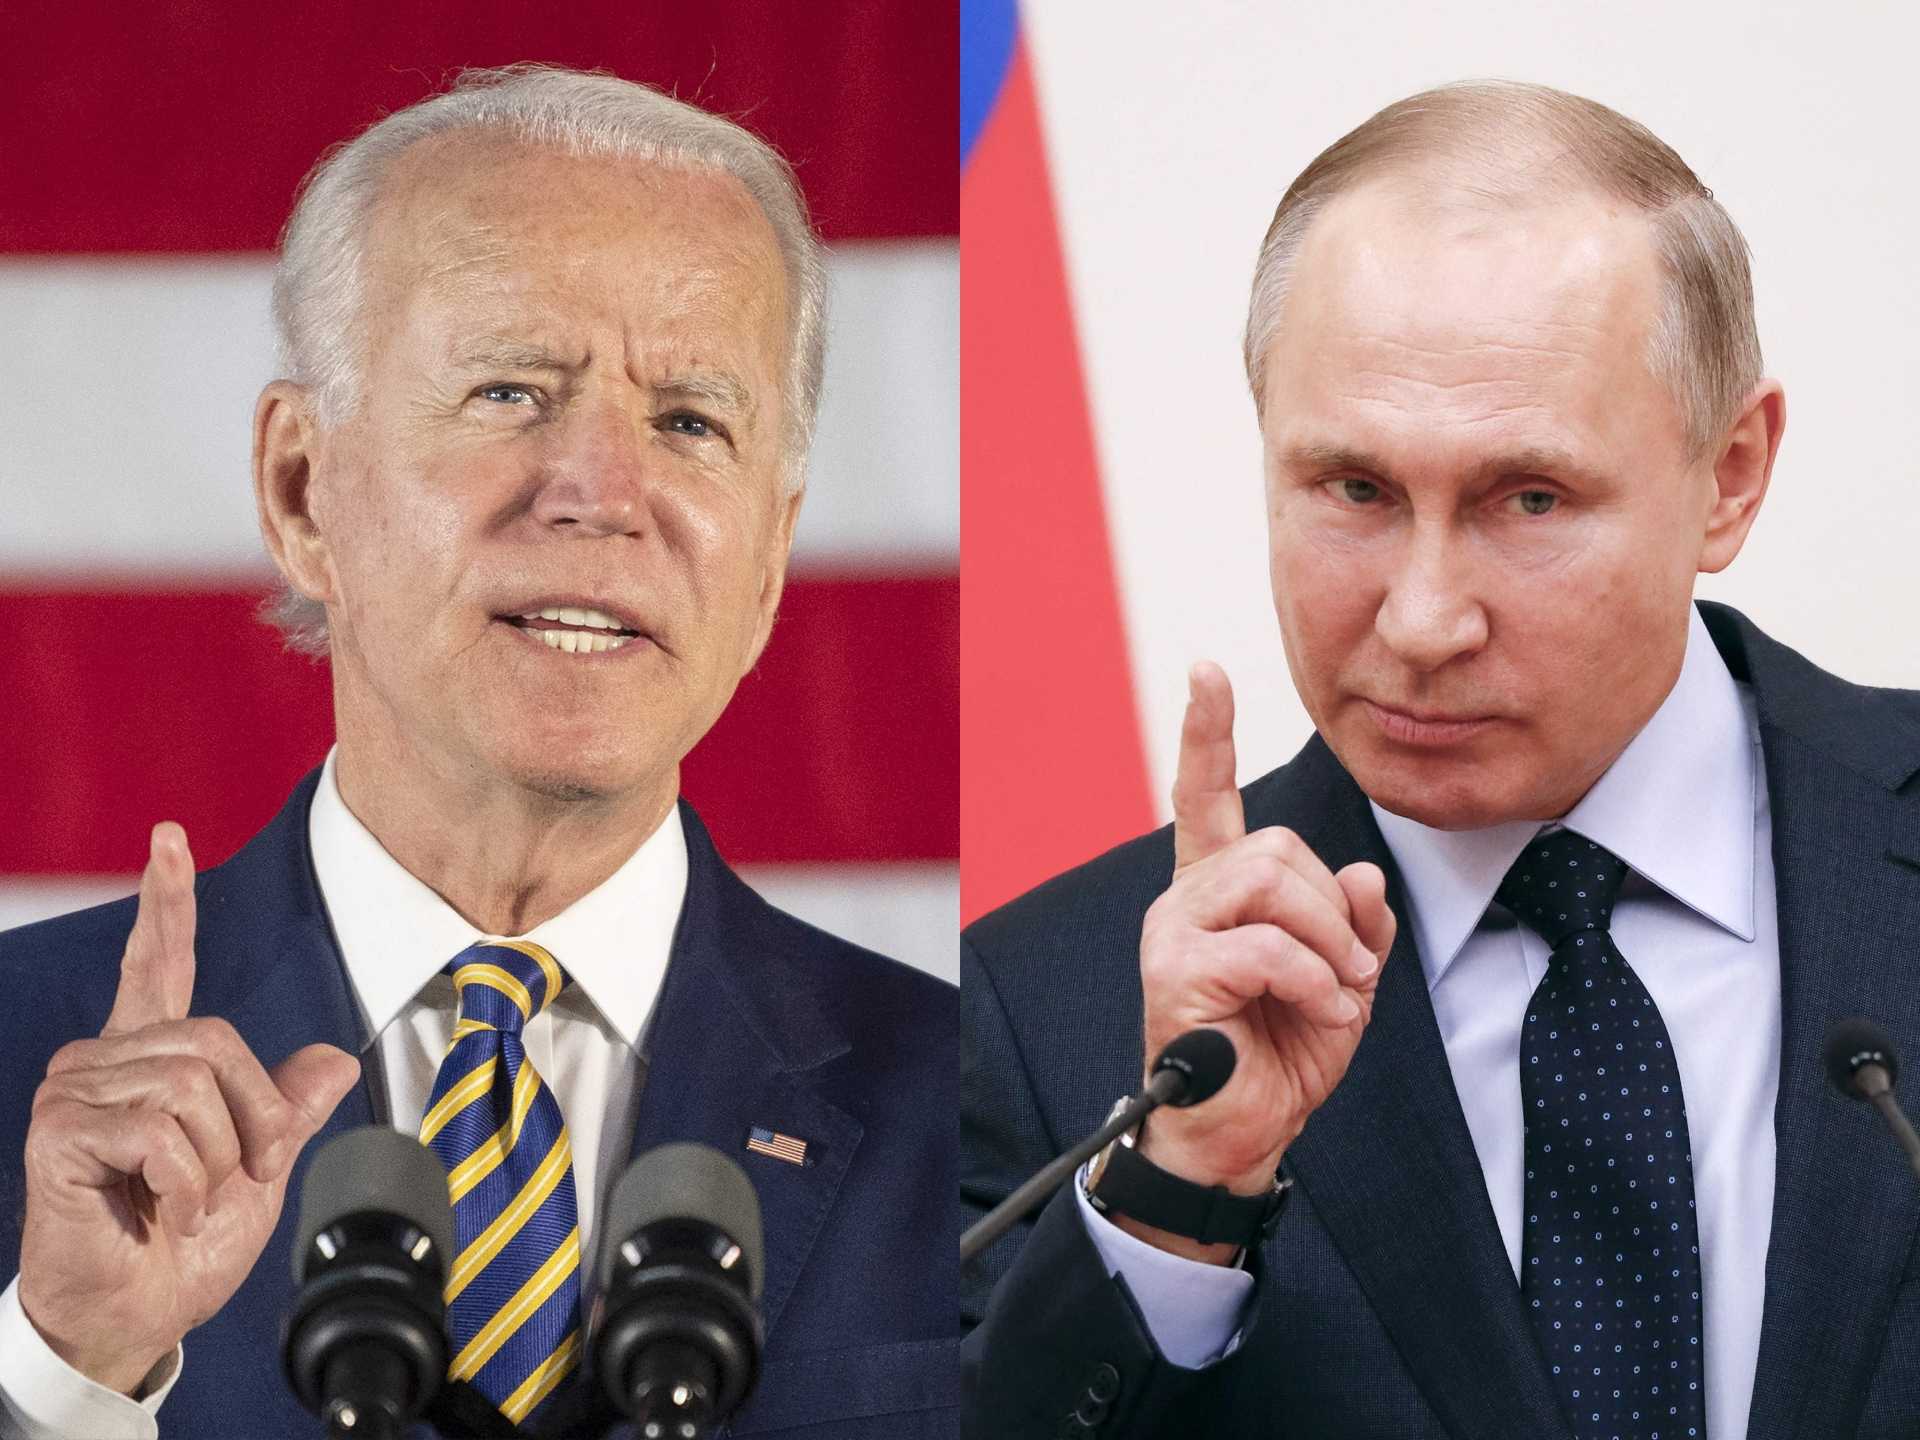 World breaking news today (June 13): Biden to hold solo press conference following Putin summit